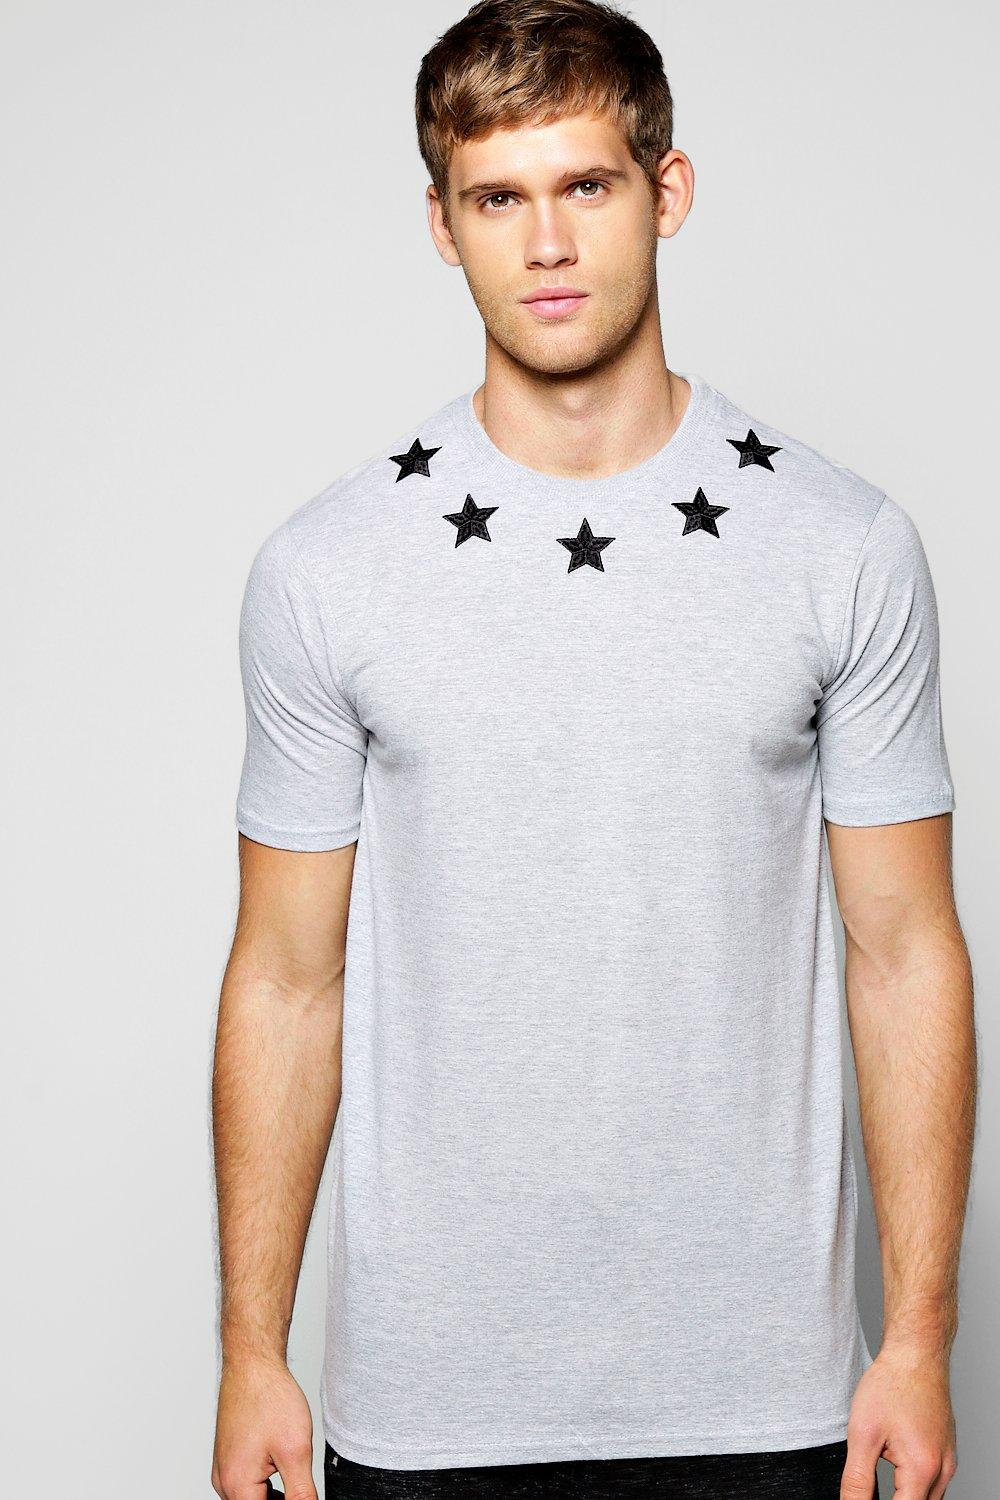 Star Embroidered T Shirt